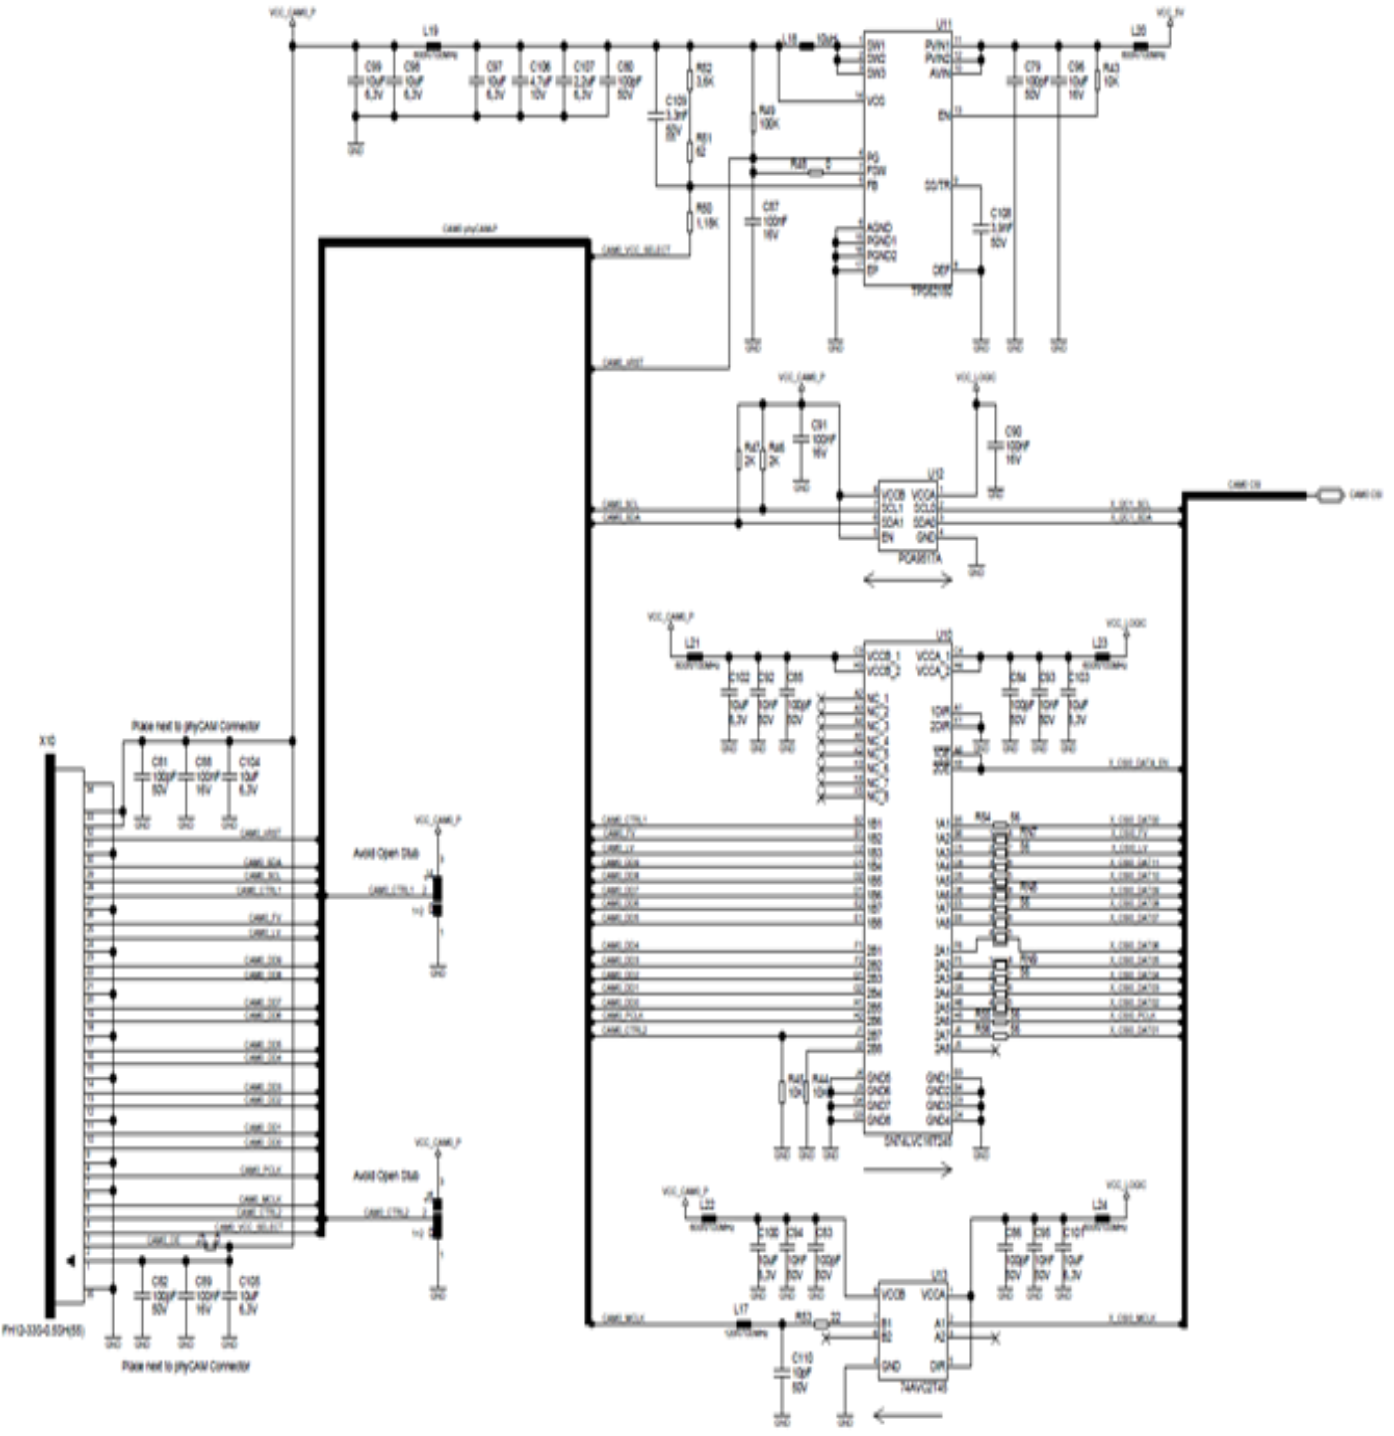 phyCAM-P Reference Circuit Diagram for Highest Compatibility